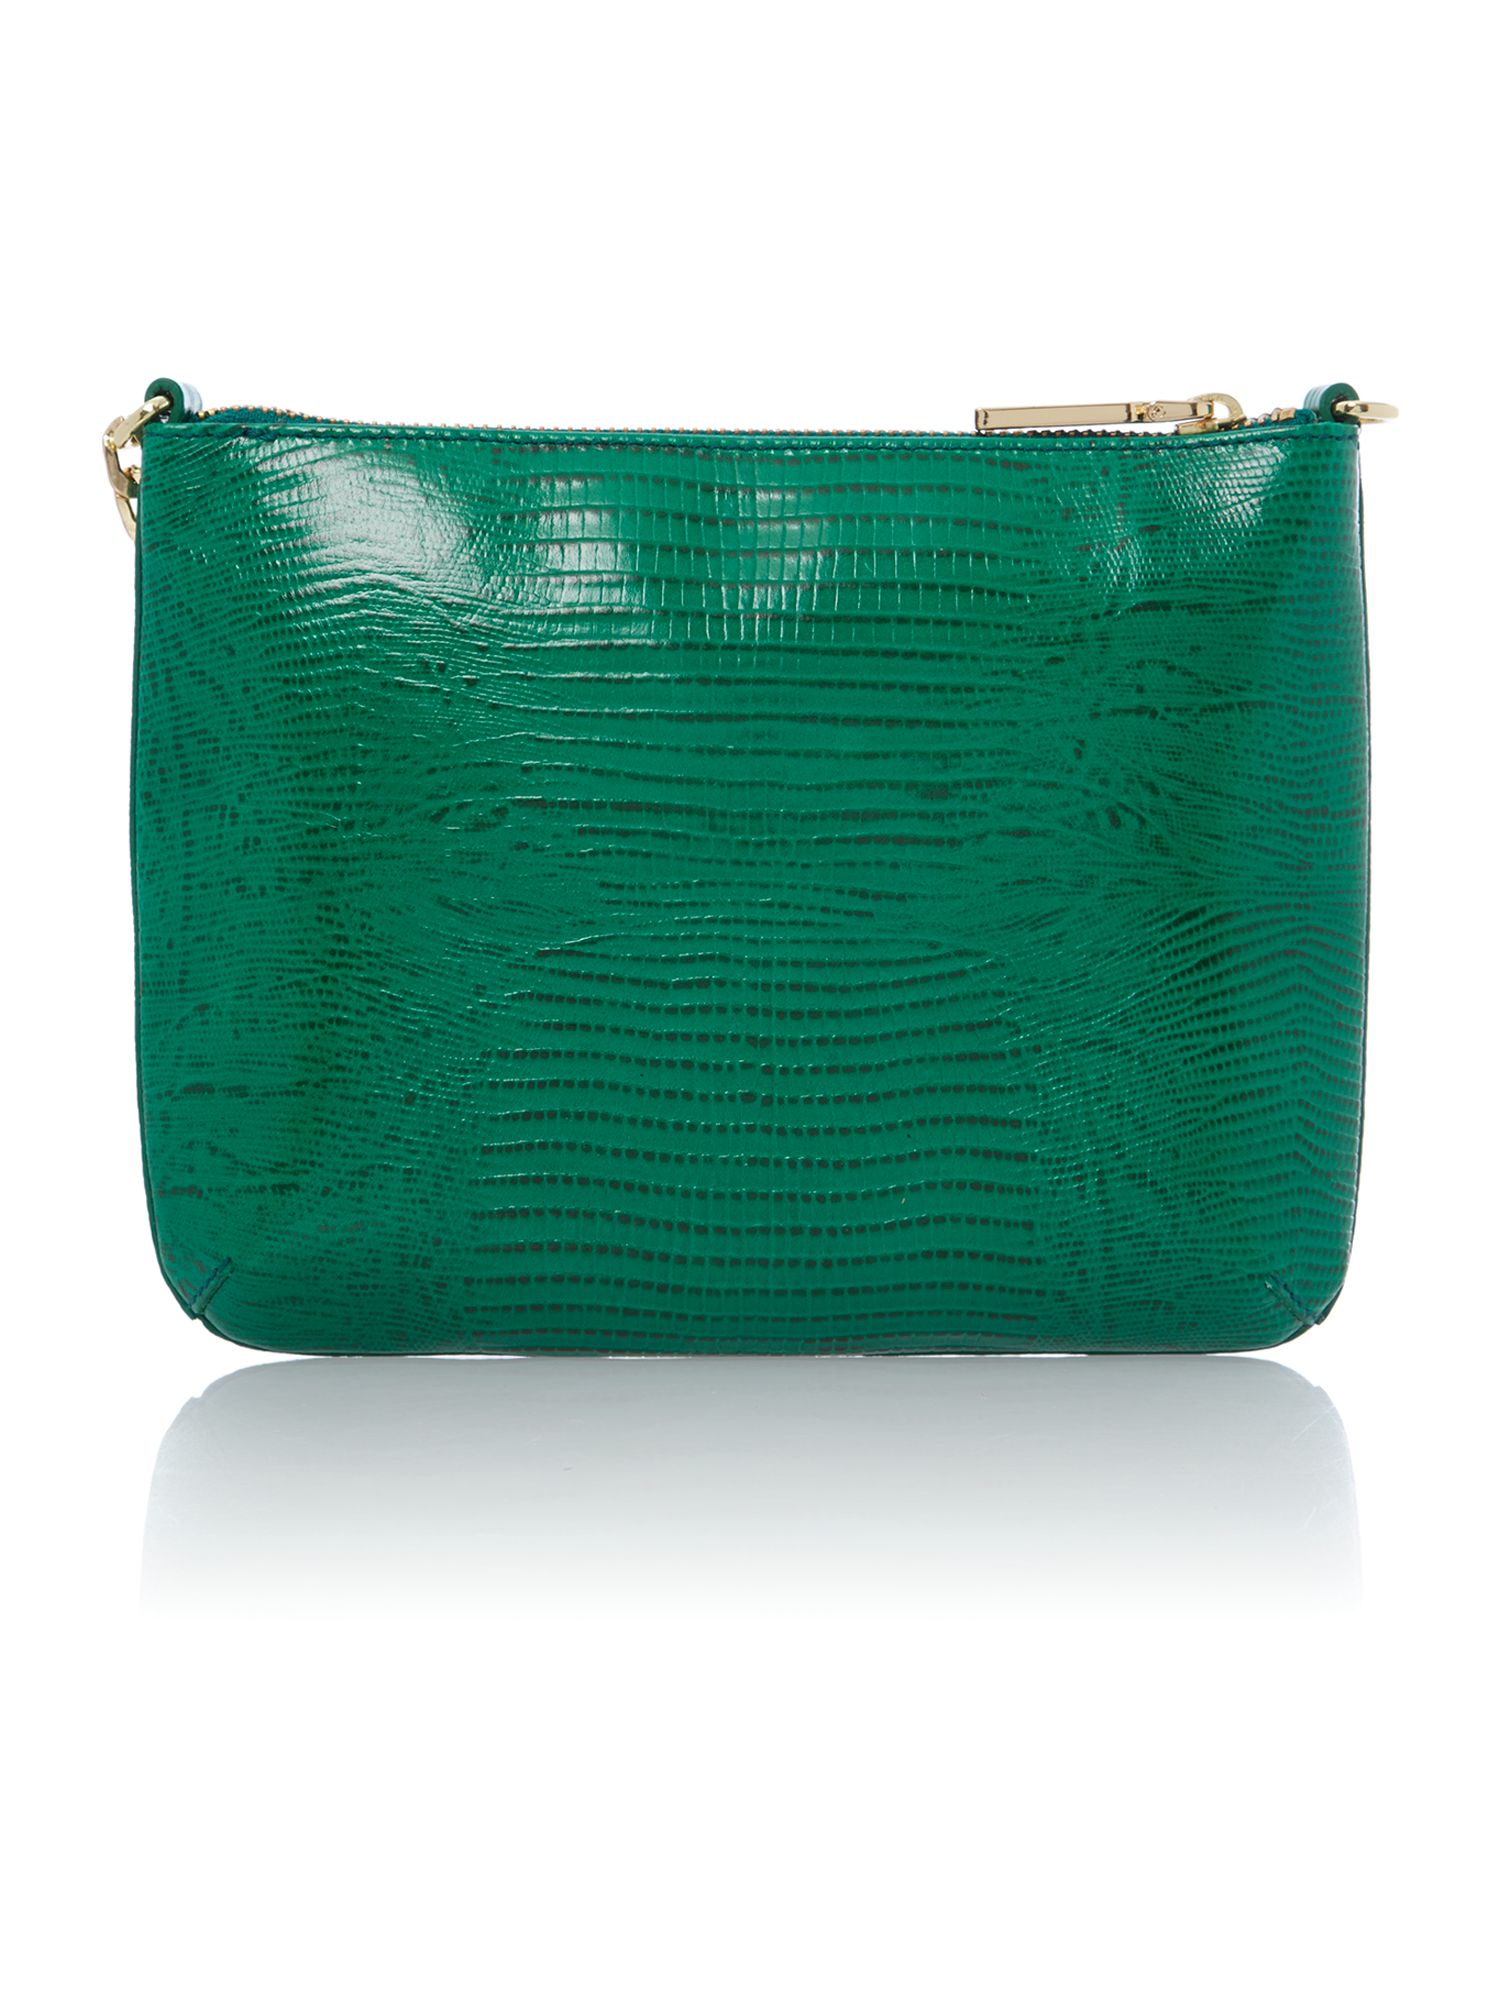 Twiggy small green lizard cross body bag